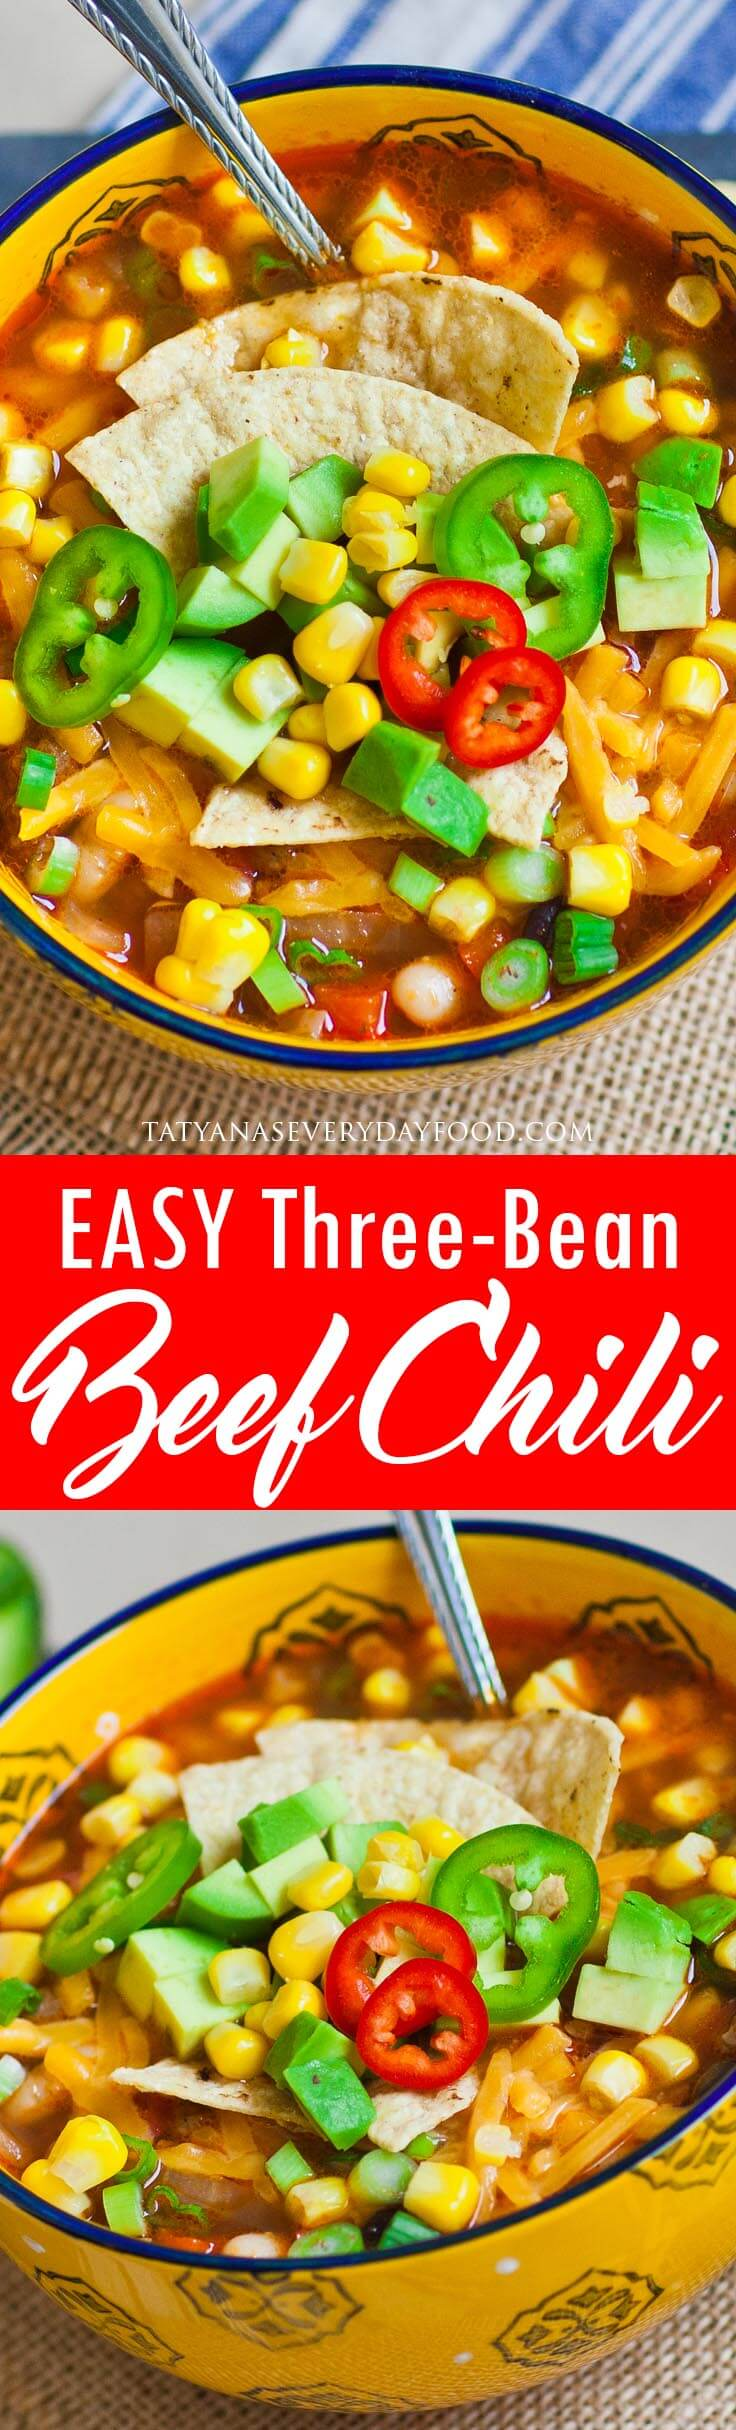 Easy Three-Bean Beef Chili with cheddar cheese video recipe